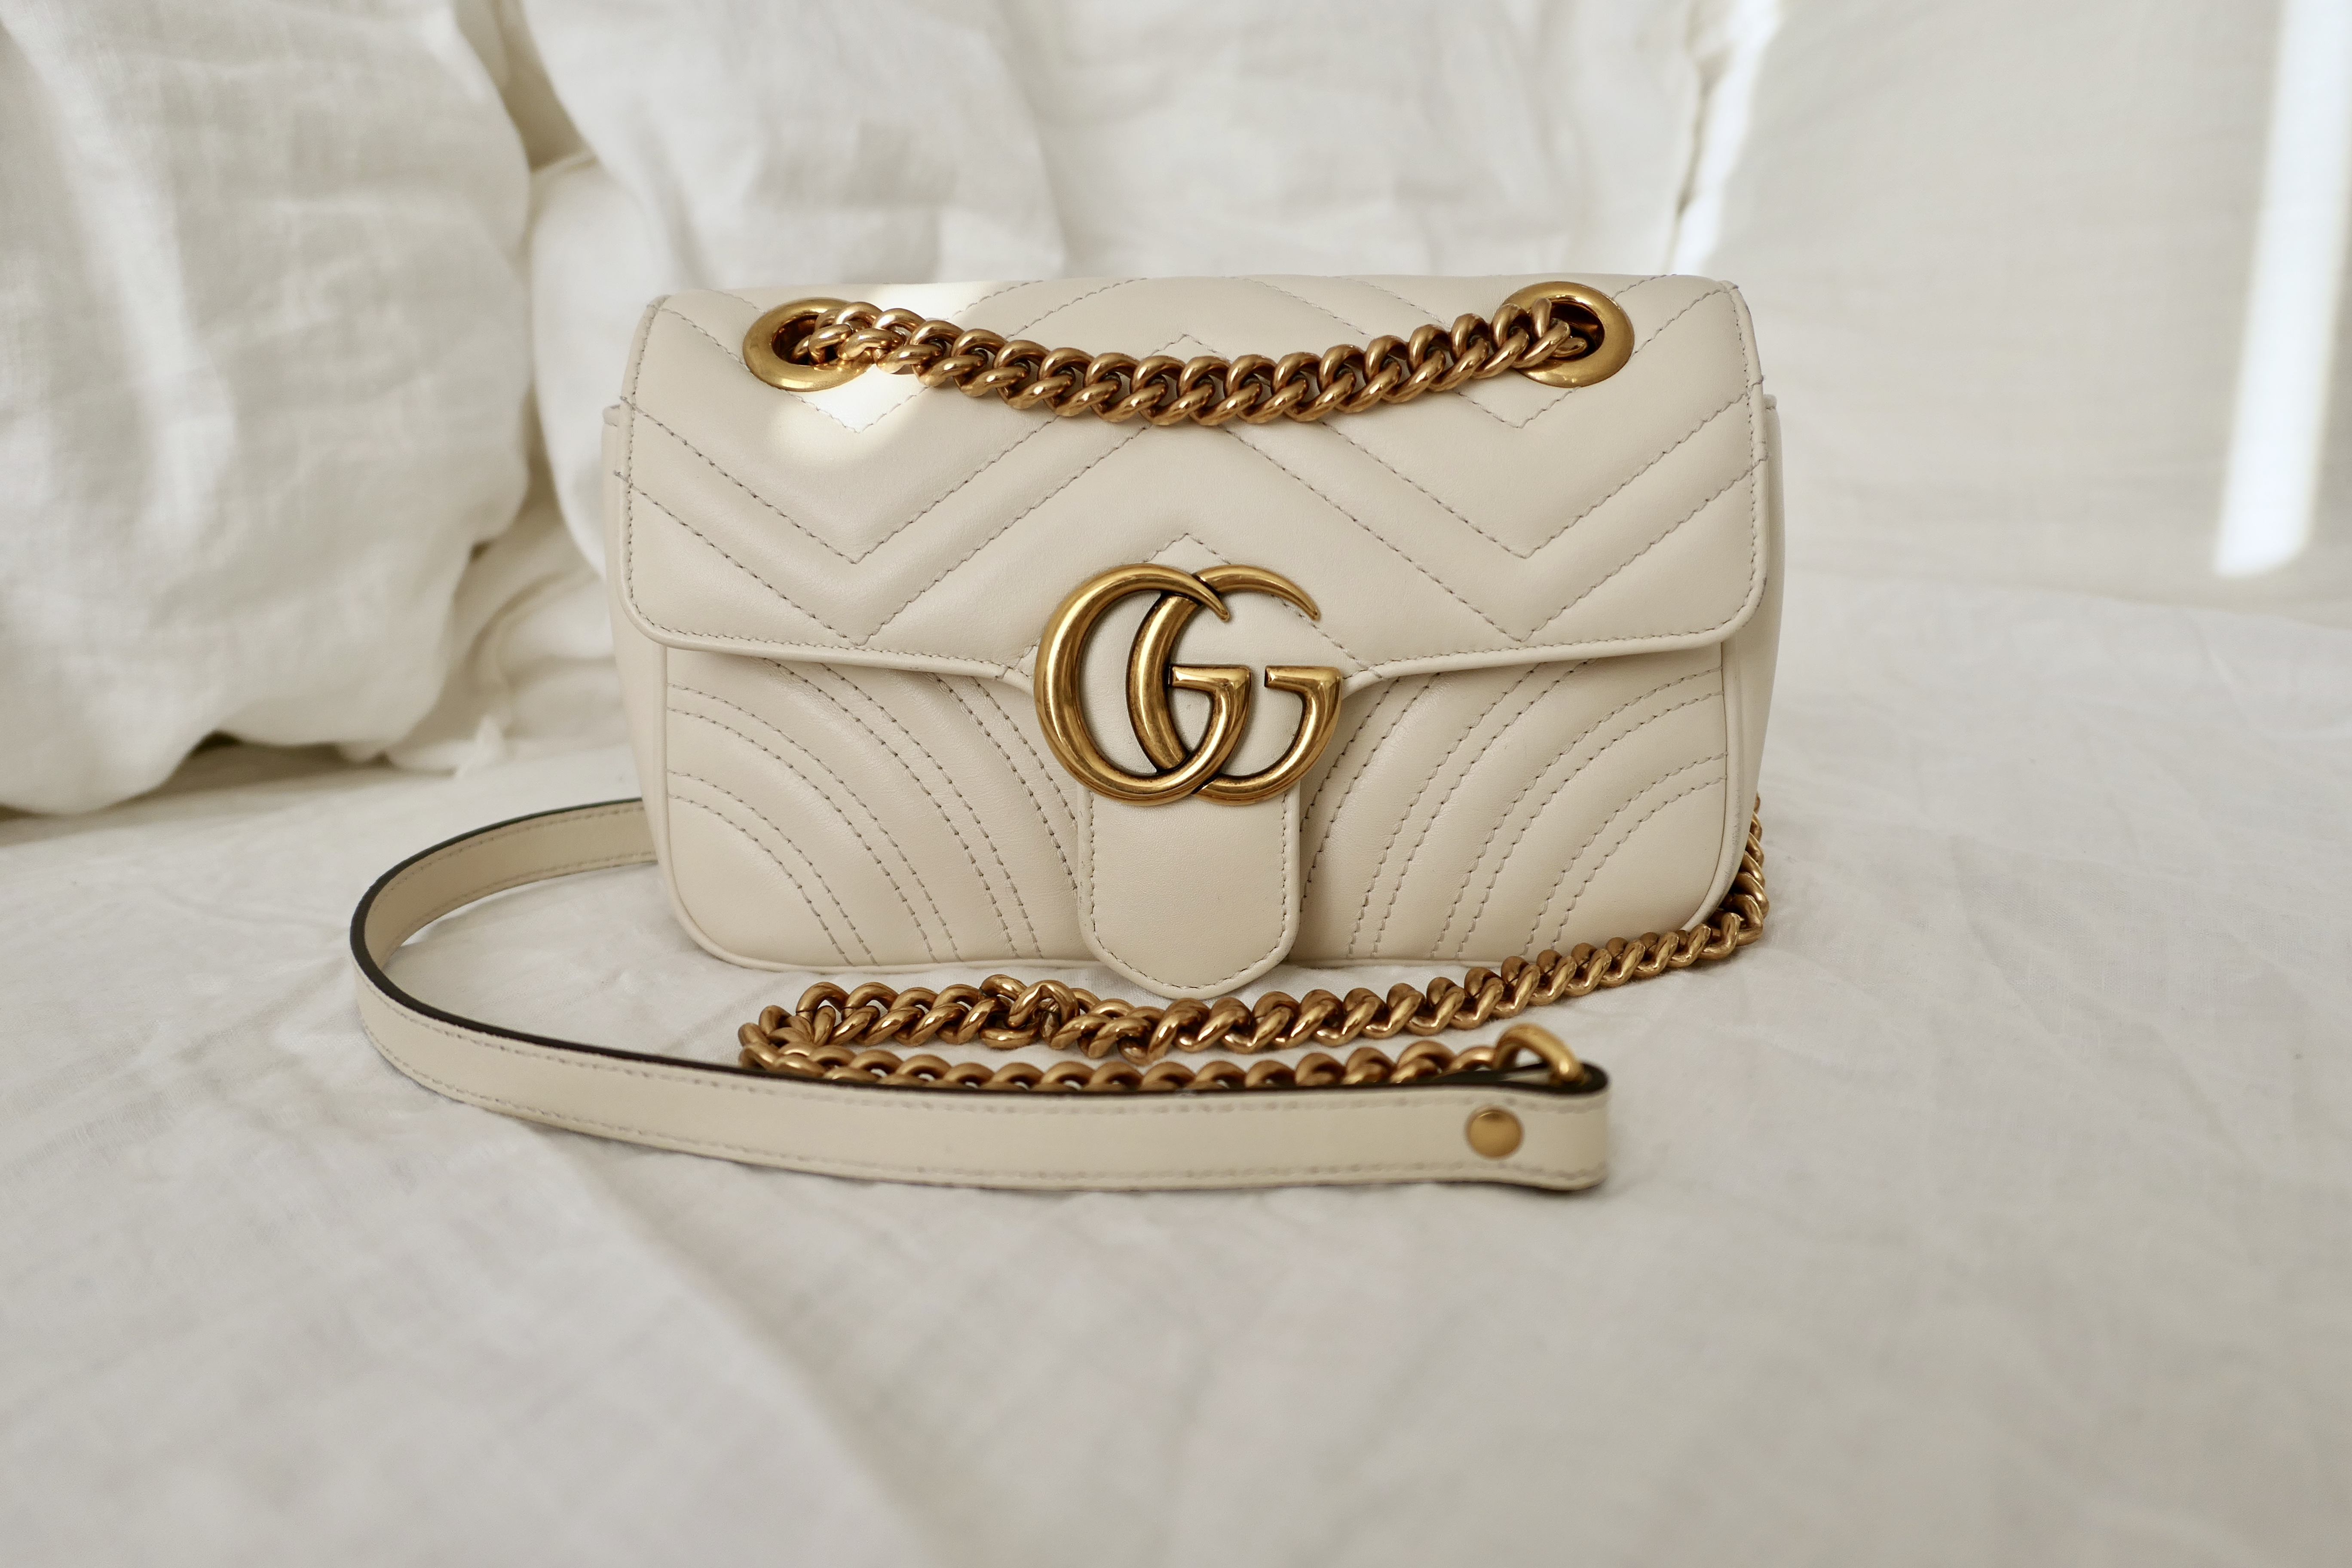 7d8601c3550a83 Gucci Marmont in ivory with gold hw, mini size.